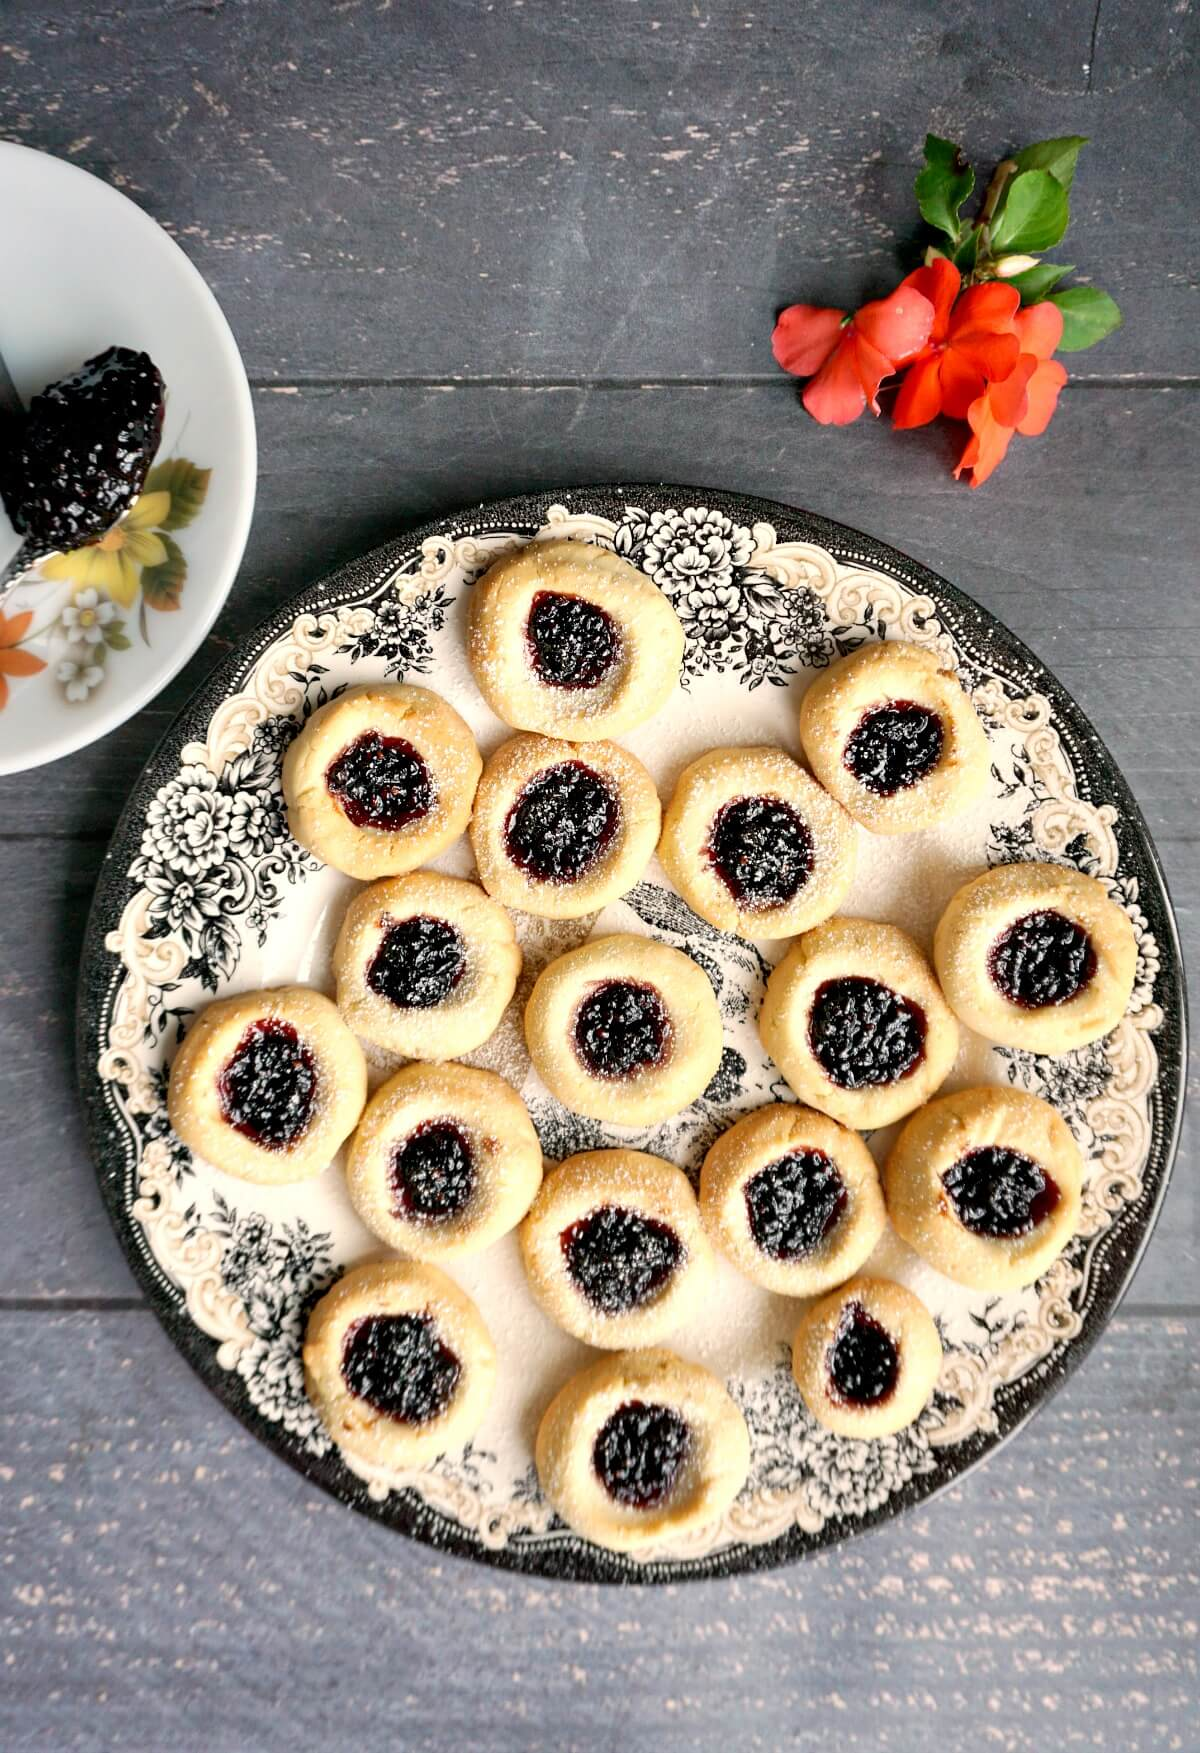 Overhead shoot of a plate with thumbprint cookies filled with jam